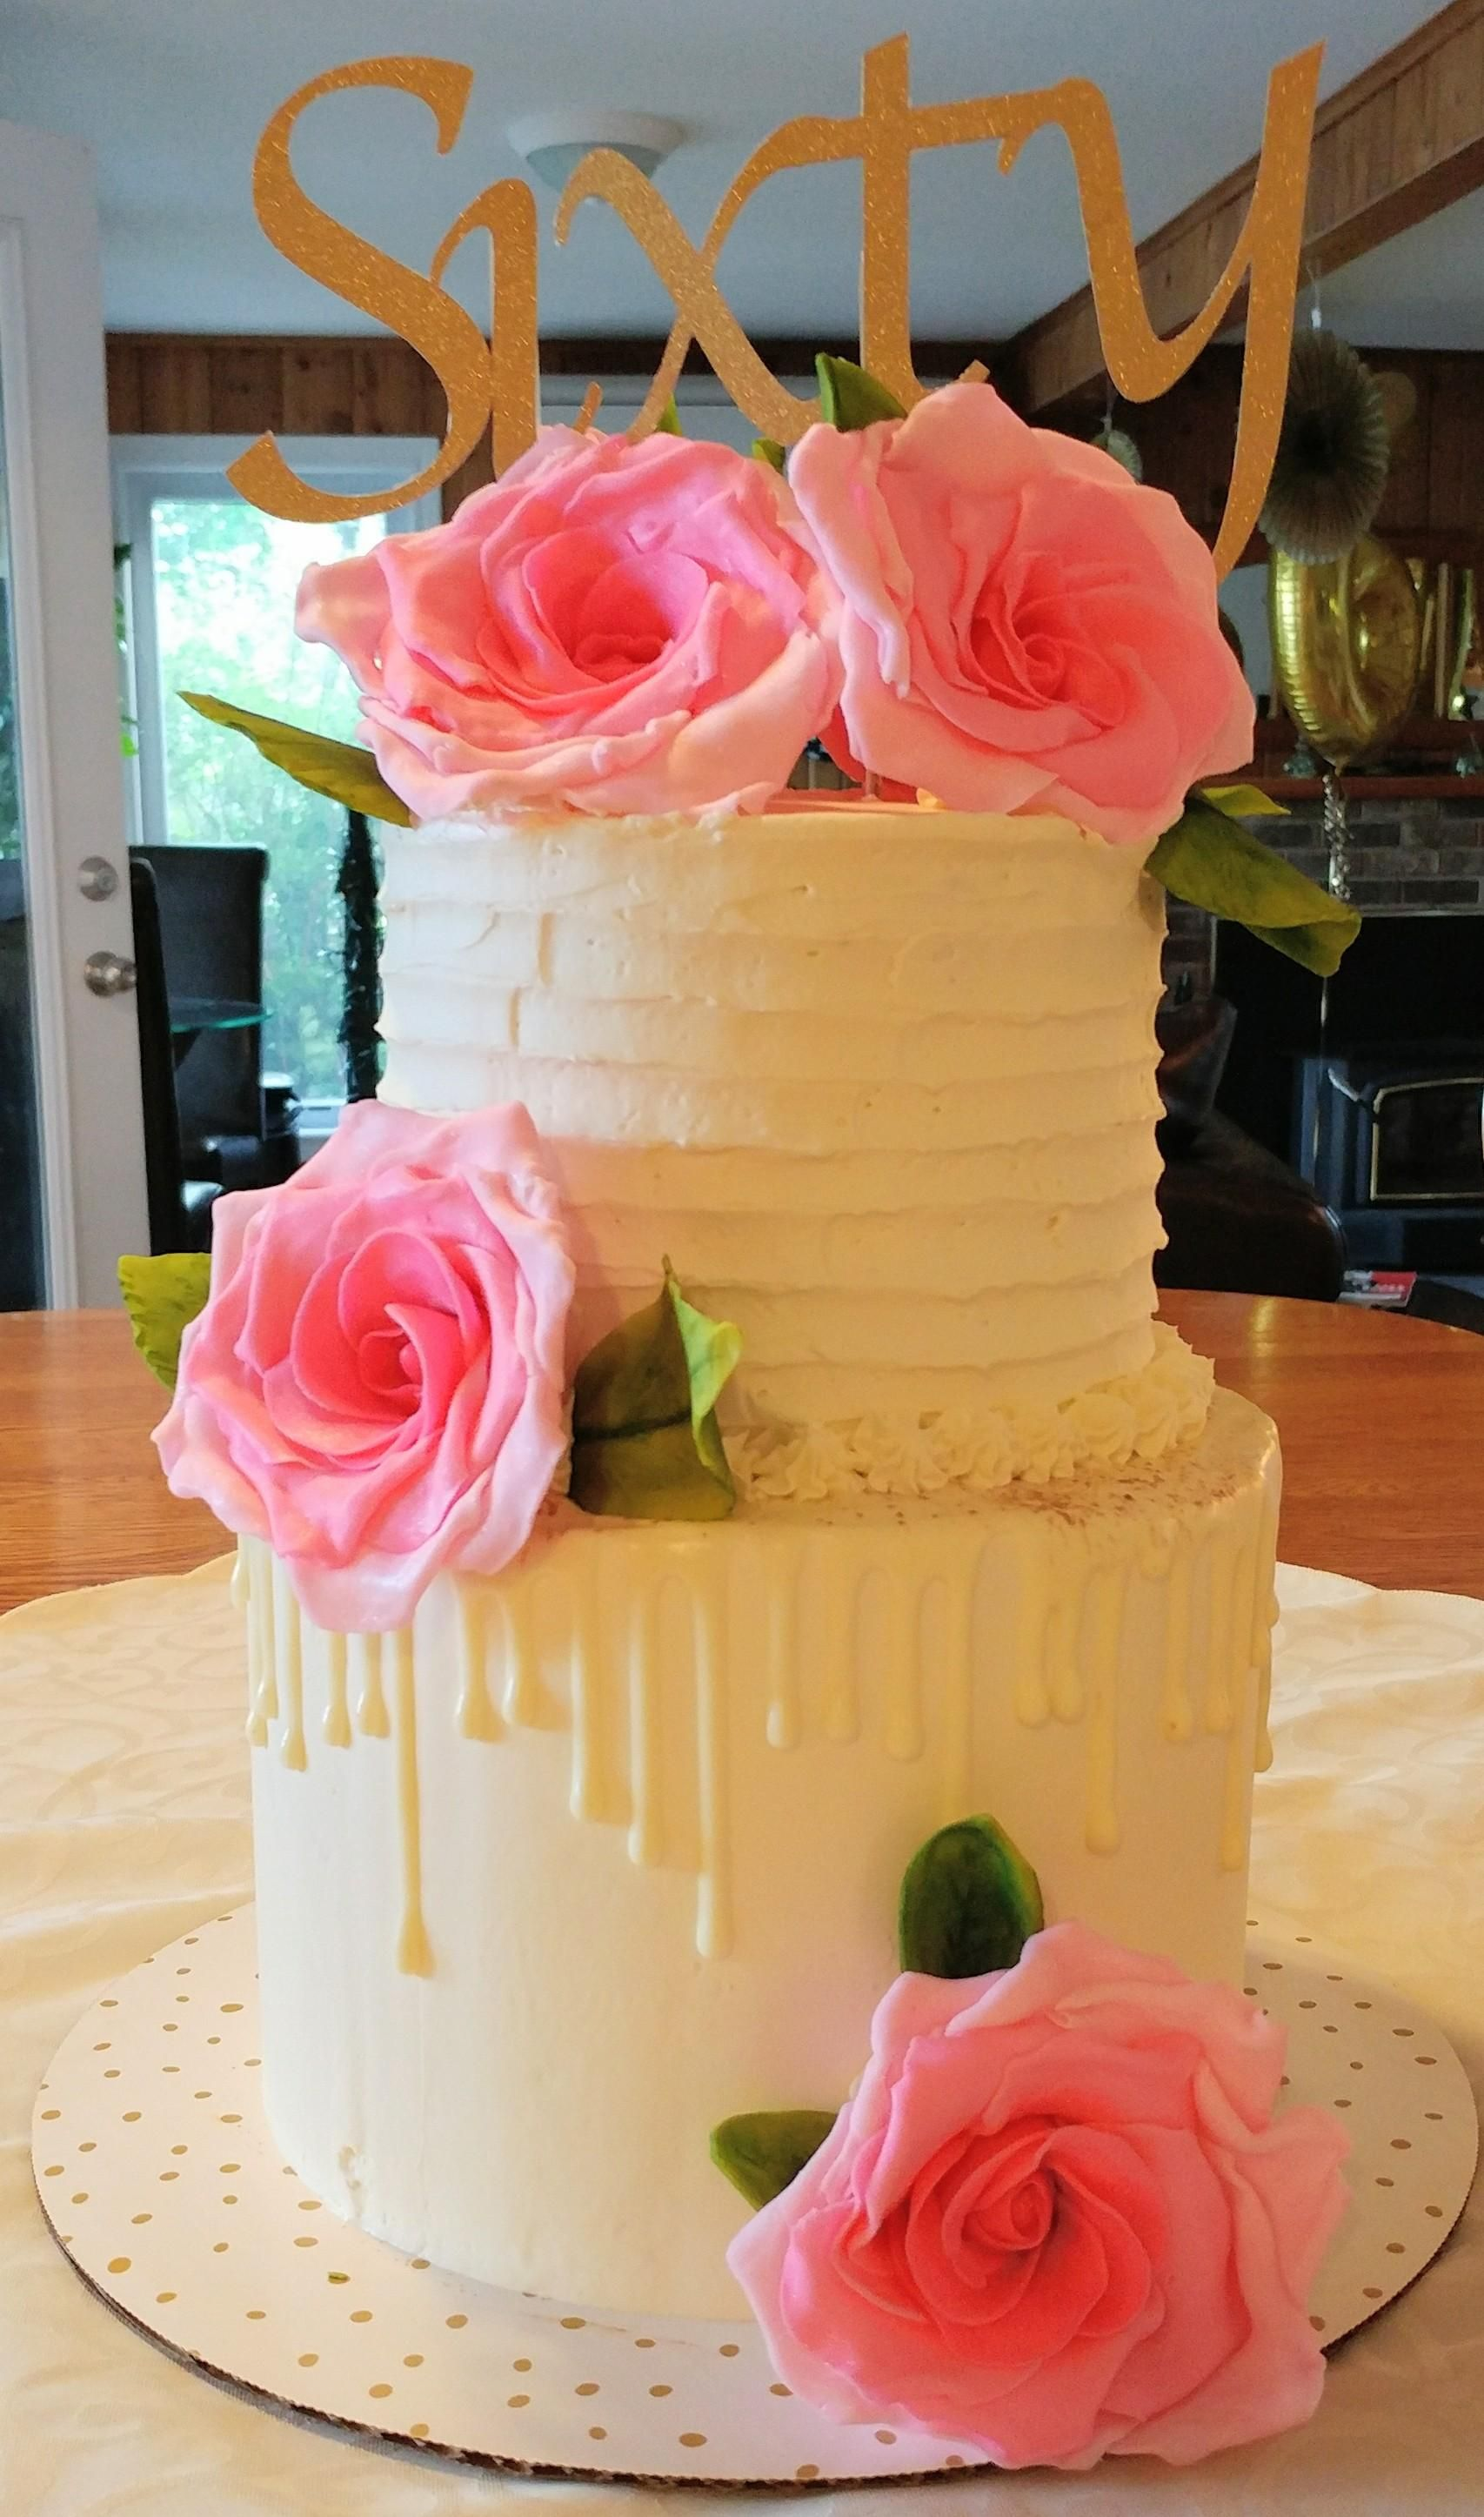 Two Tier 60th Birthday Cake With Fondant Roses Baking Cooking Food Recipes Desserts Win Cookies Recipe Cakes Cupcakes